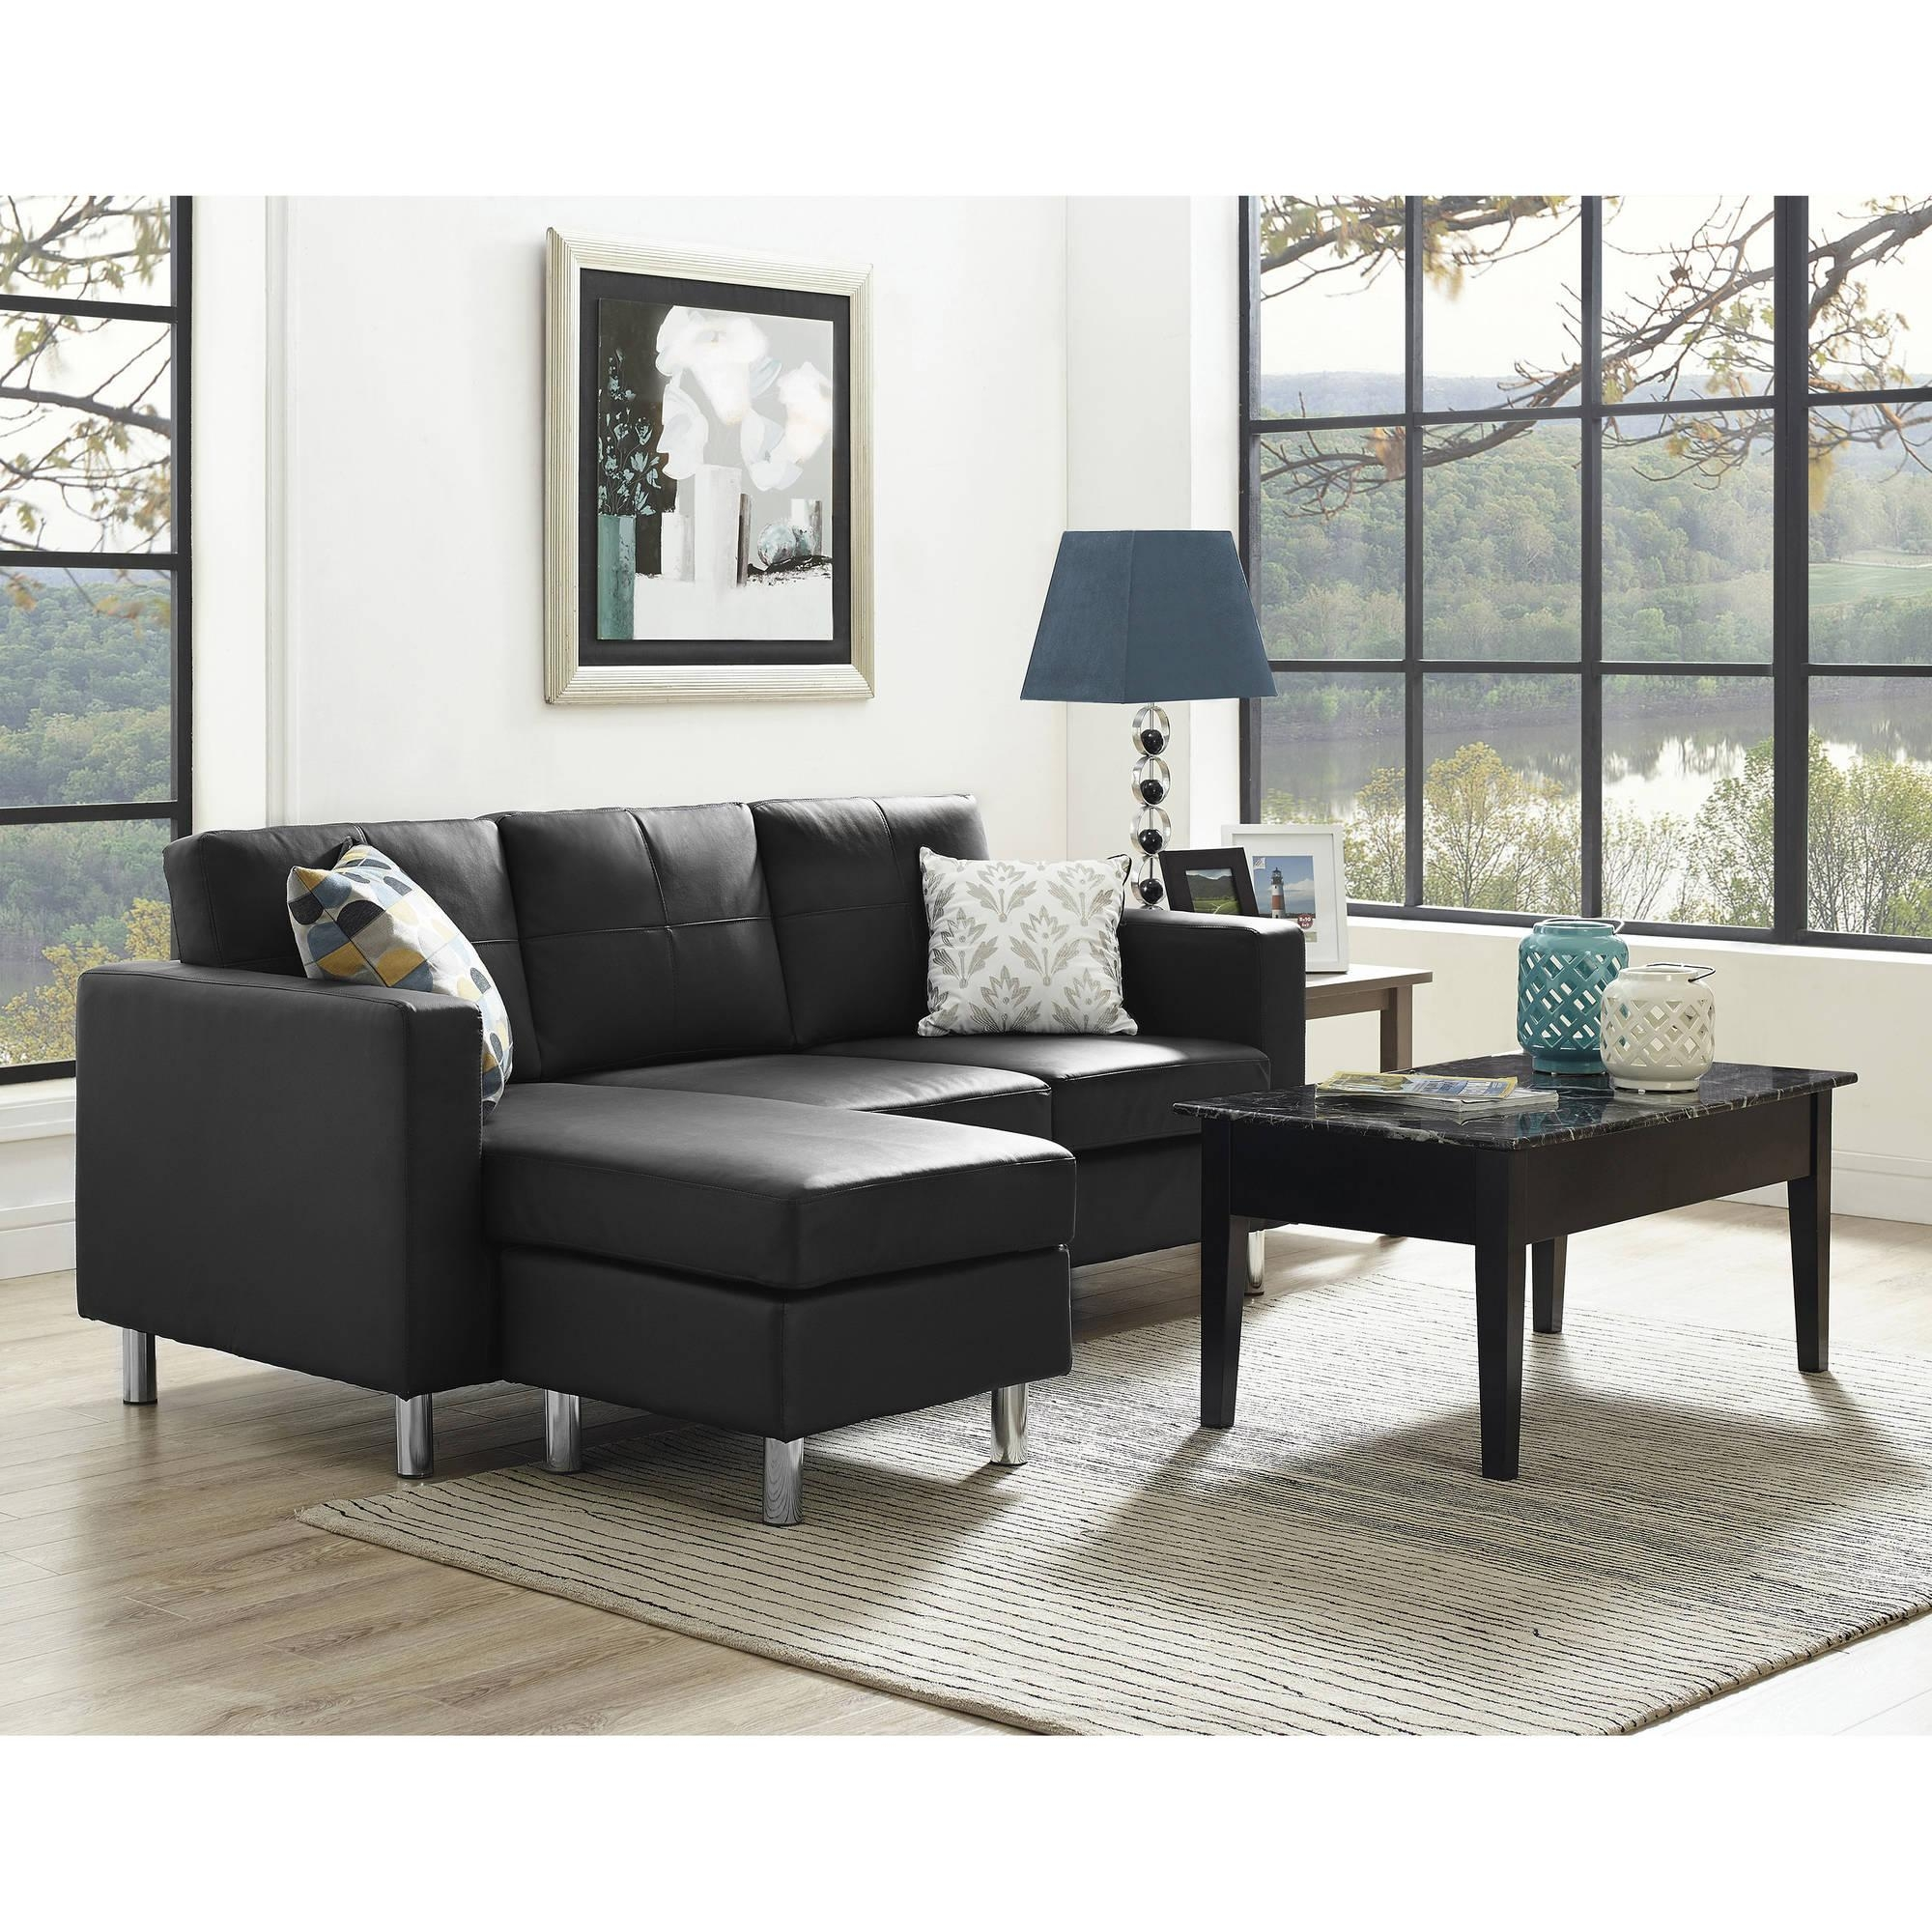 Dorel Living Small Spaces Configurable Sectional Sofa, Multiple With Regard To Sectional Ideas For Small Rooms (Image 9 of 20)